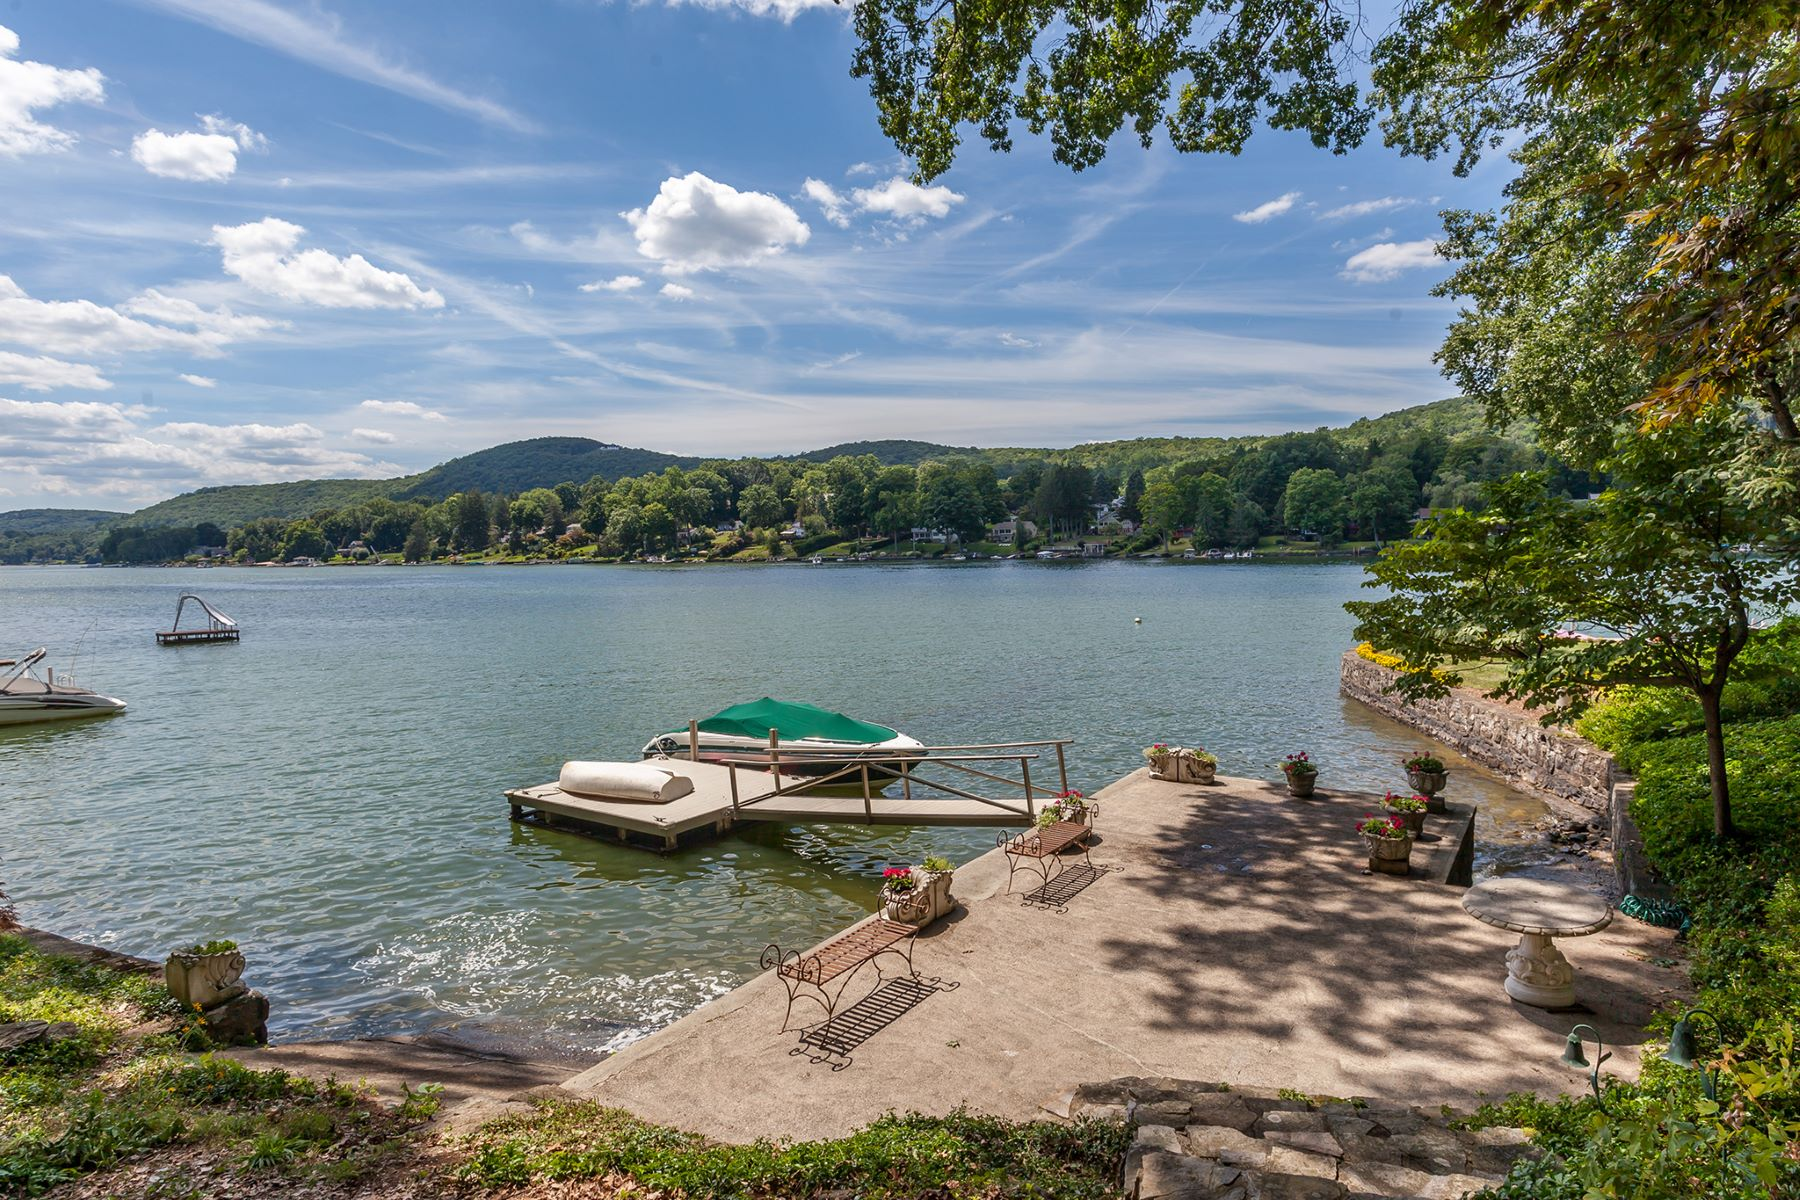 Villa per Vendita alle ore Candlewood Lake Waterfront 42 Bogus Hill New Fairfield, Connecticut 06812 Stati Uniti